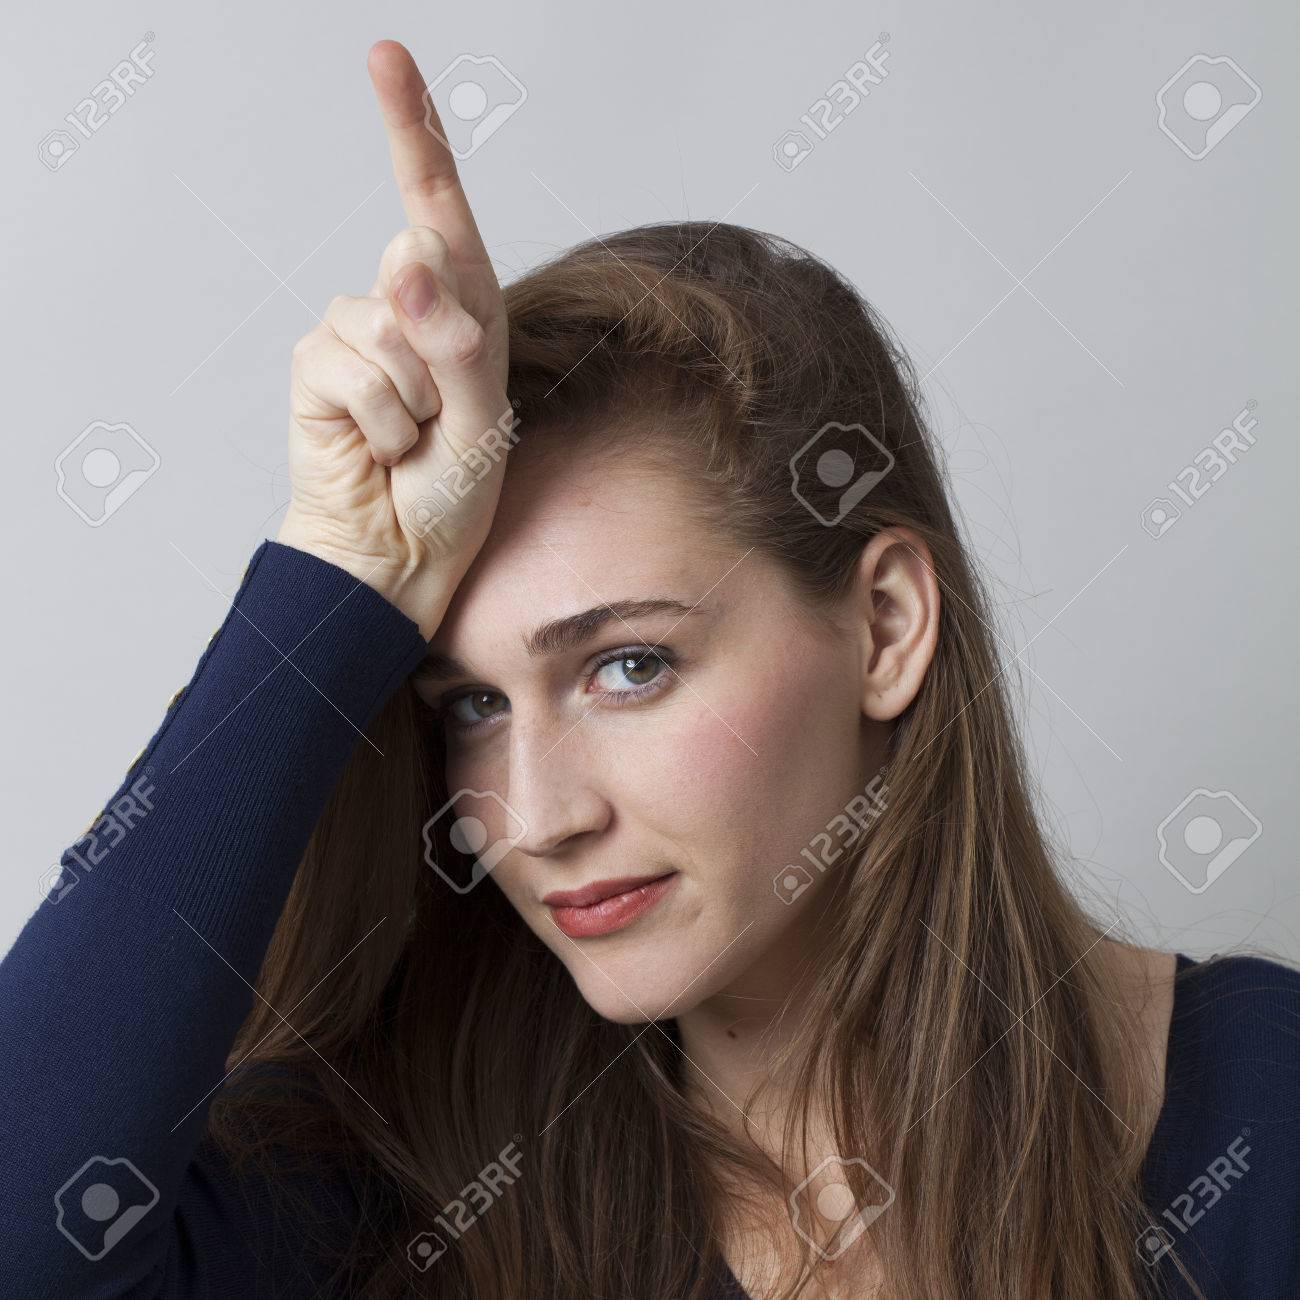 Focused young woman making the l sign on forehead for loser message cool hand gesture